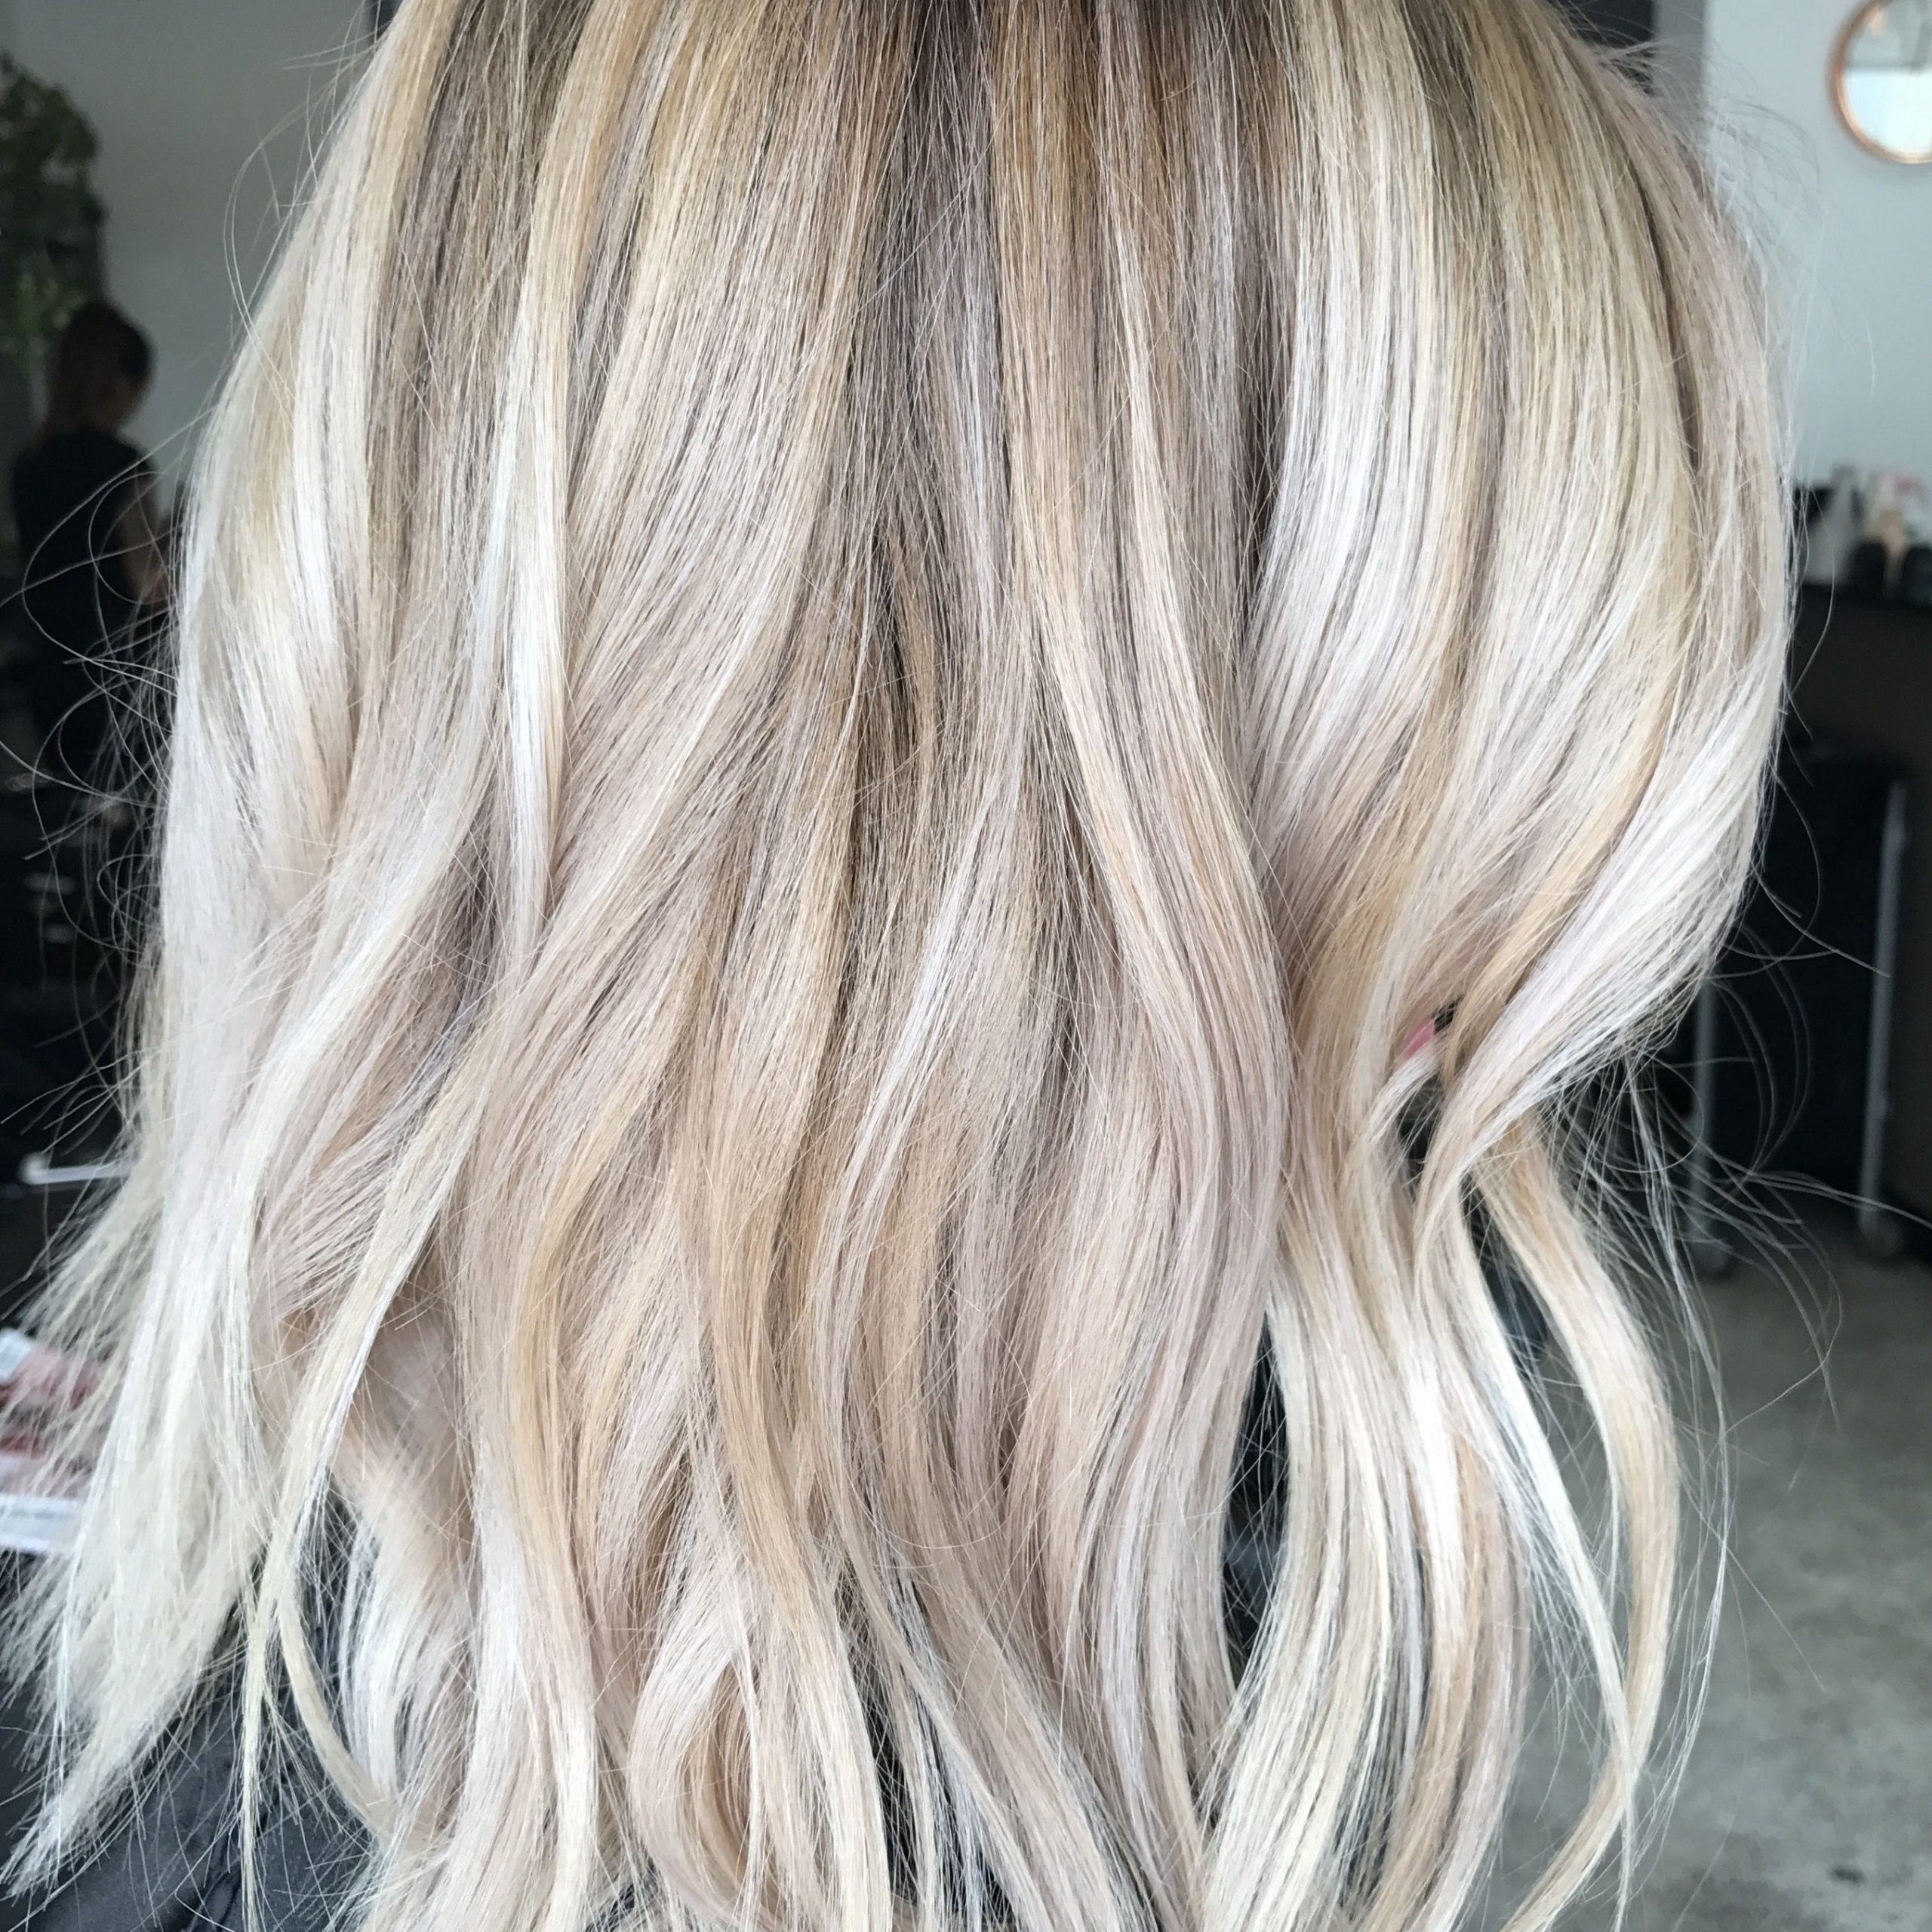 Pin On Hair Stuff With Regard To Shaggy Bob Hairstyles With Blonde Balayage (View 5 of 20)